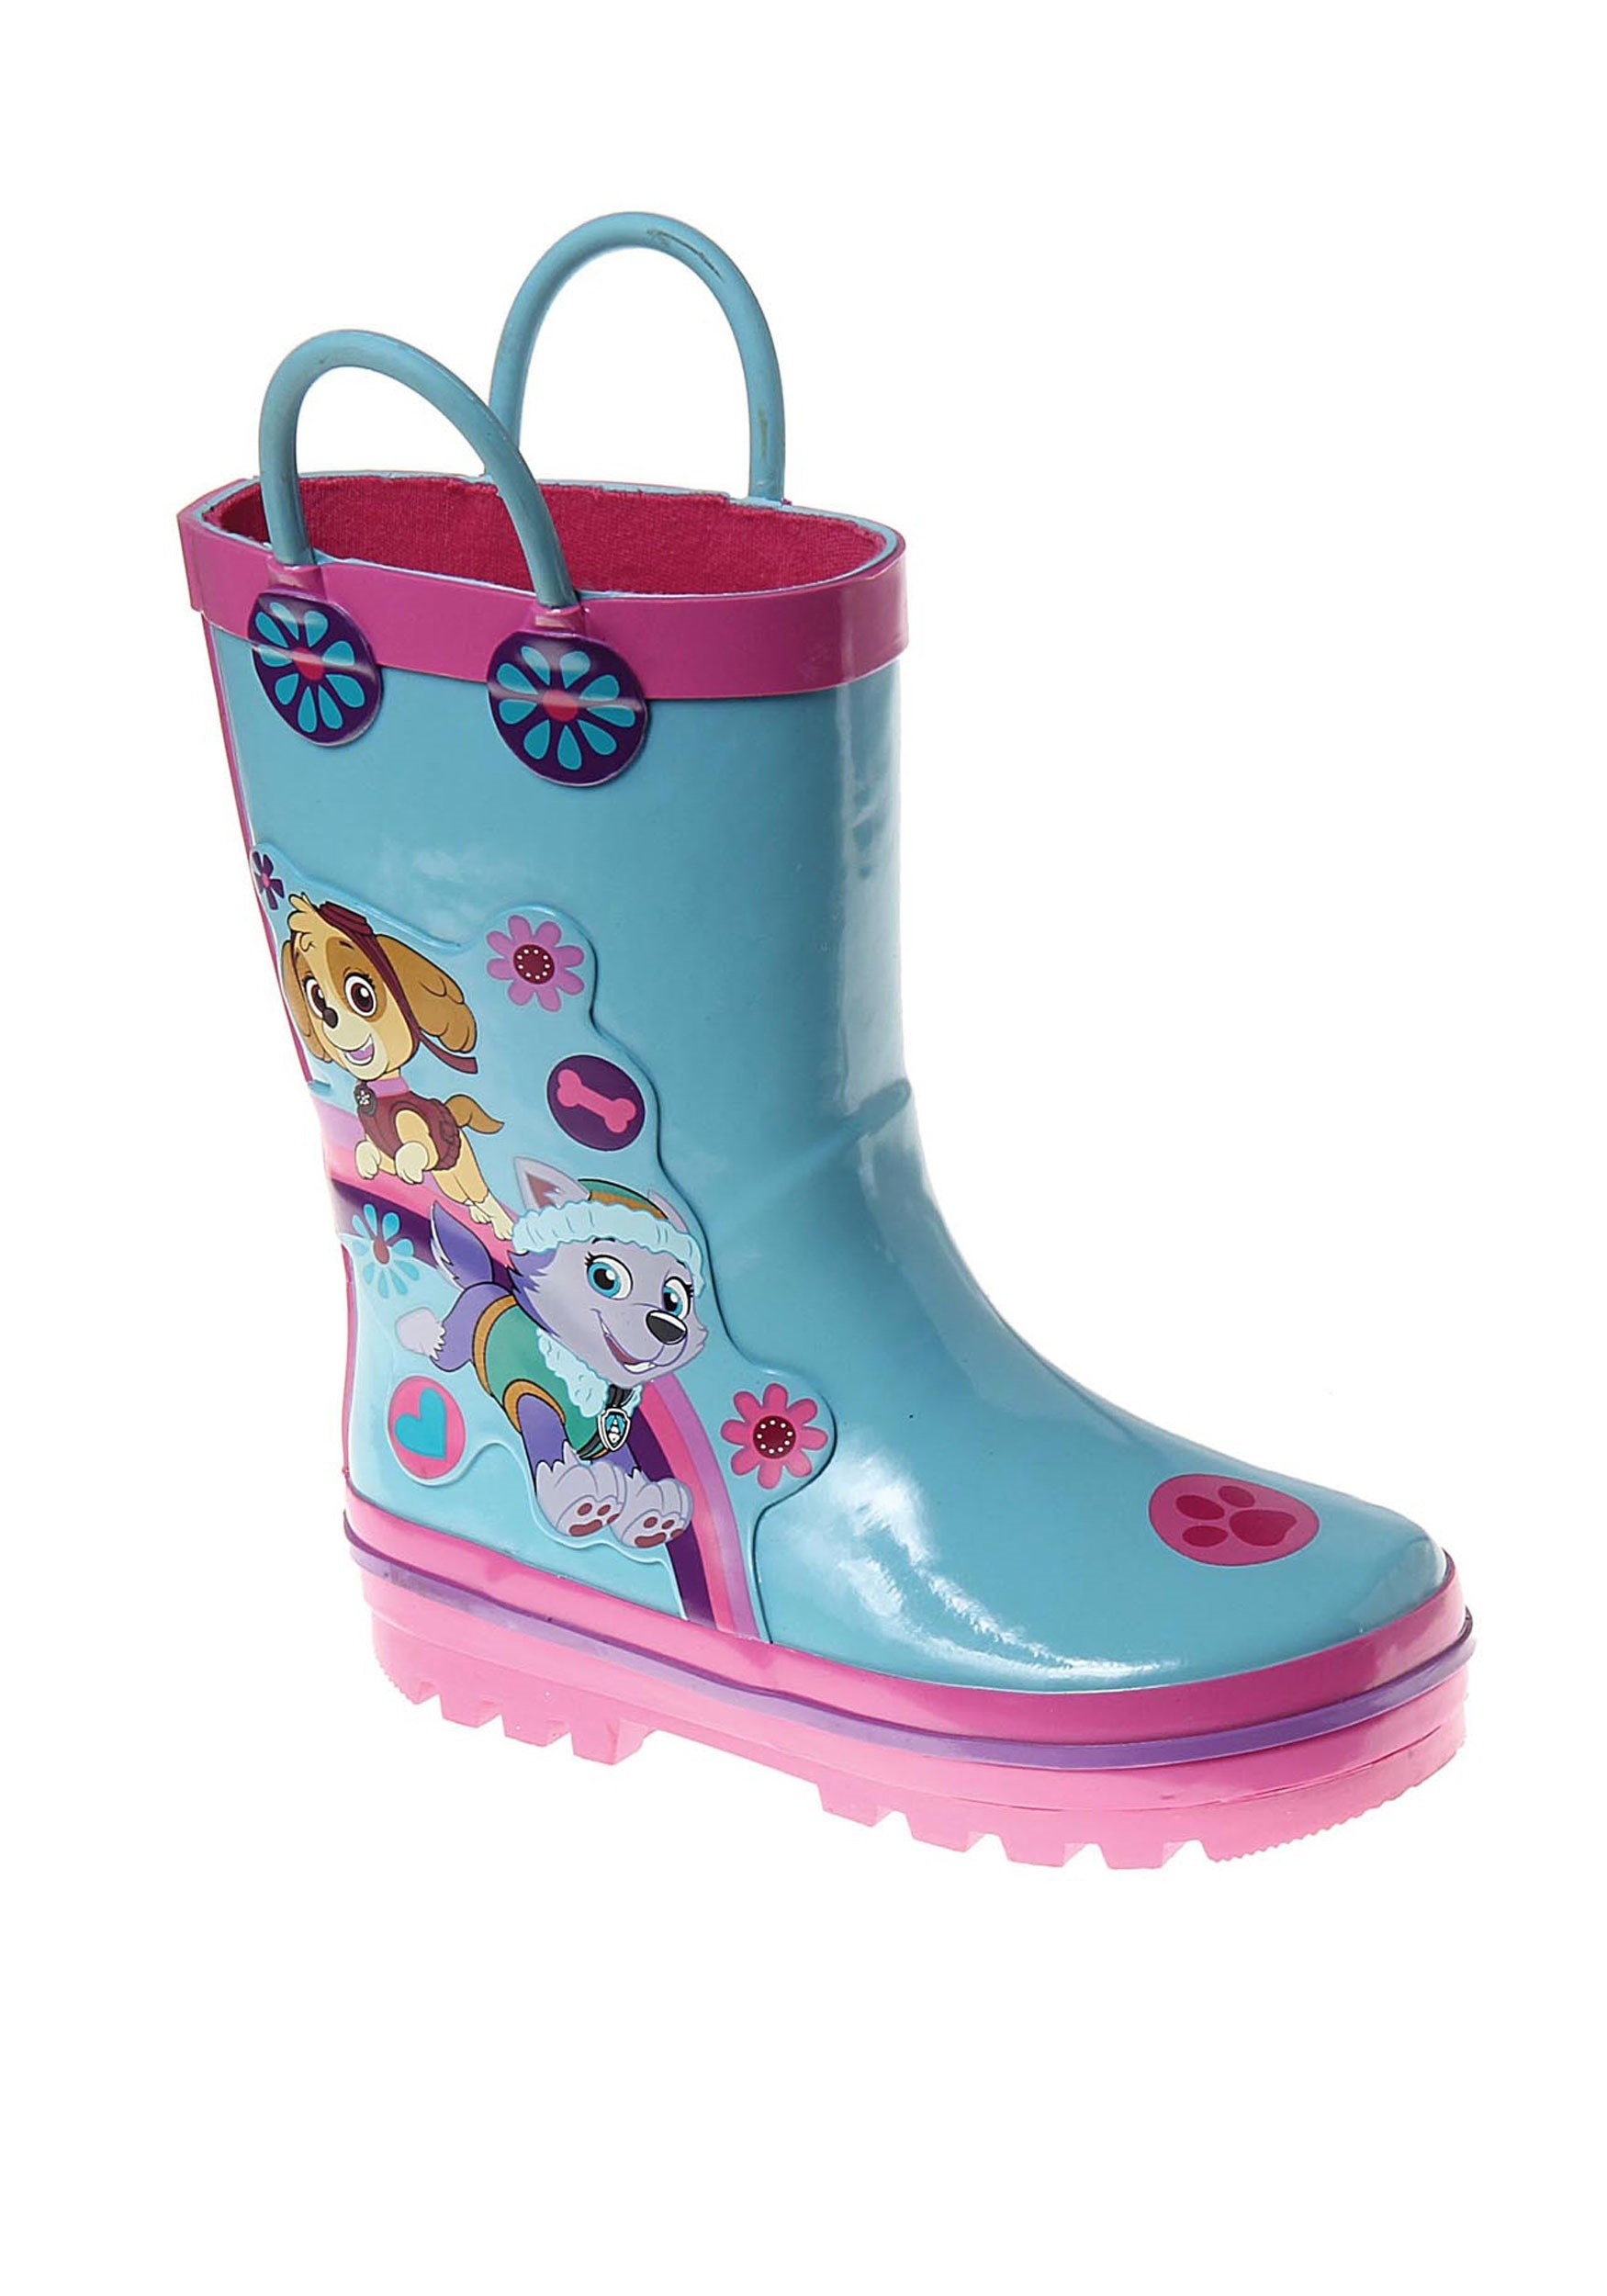 Paw Patrol Skye and Everest Rain Boots for Girls